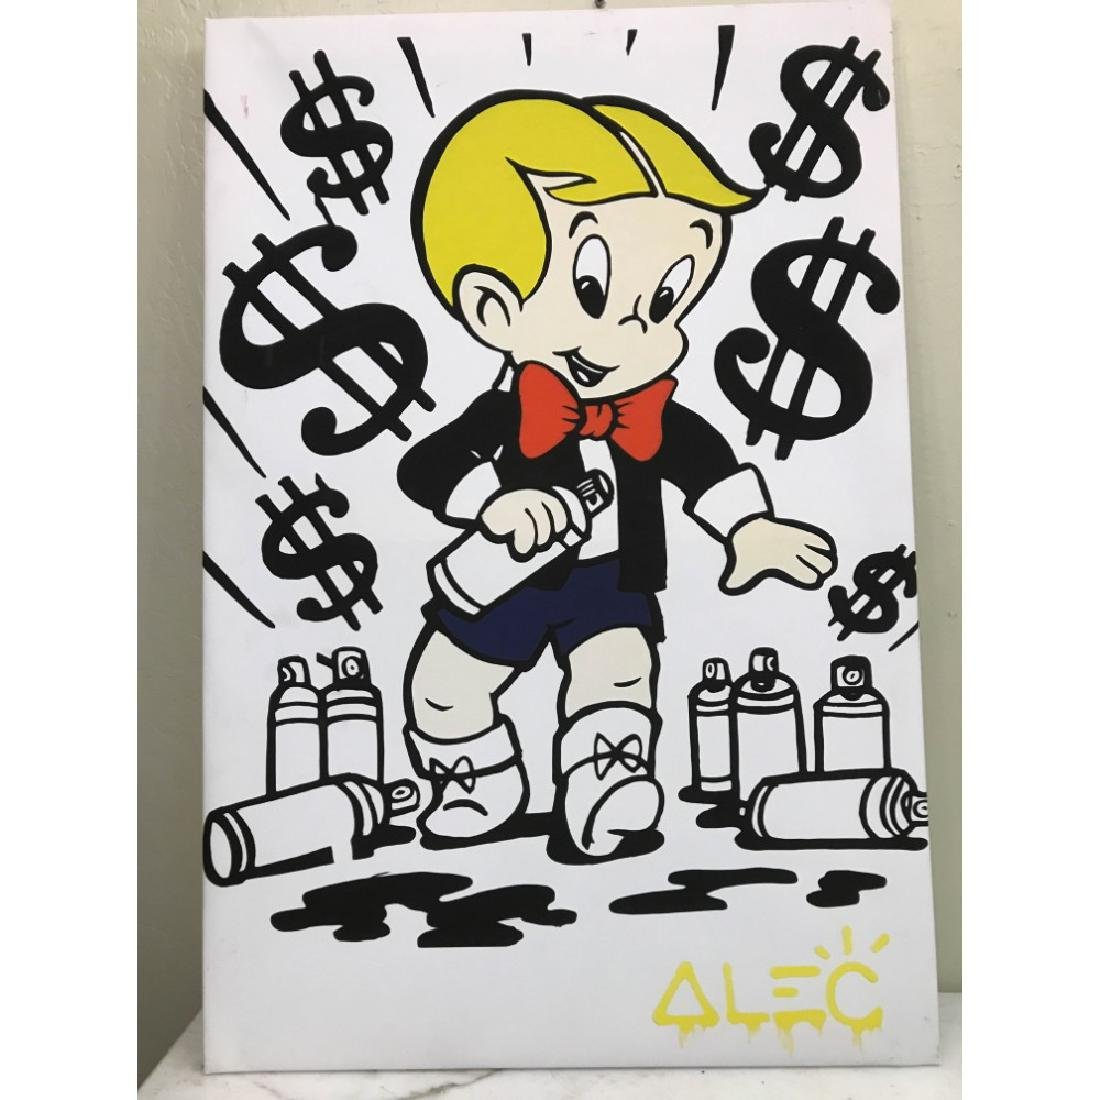 Alec Monopoly's Rich with Spray Paint Print